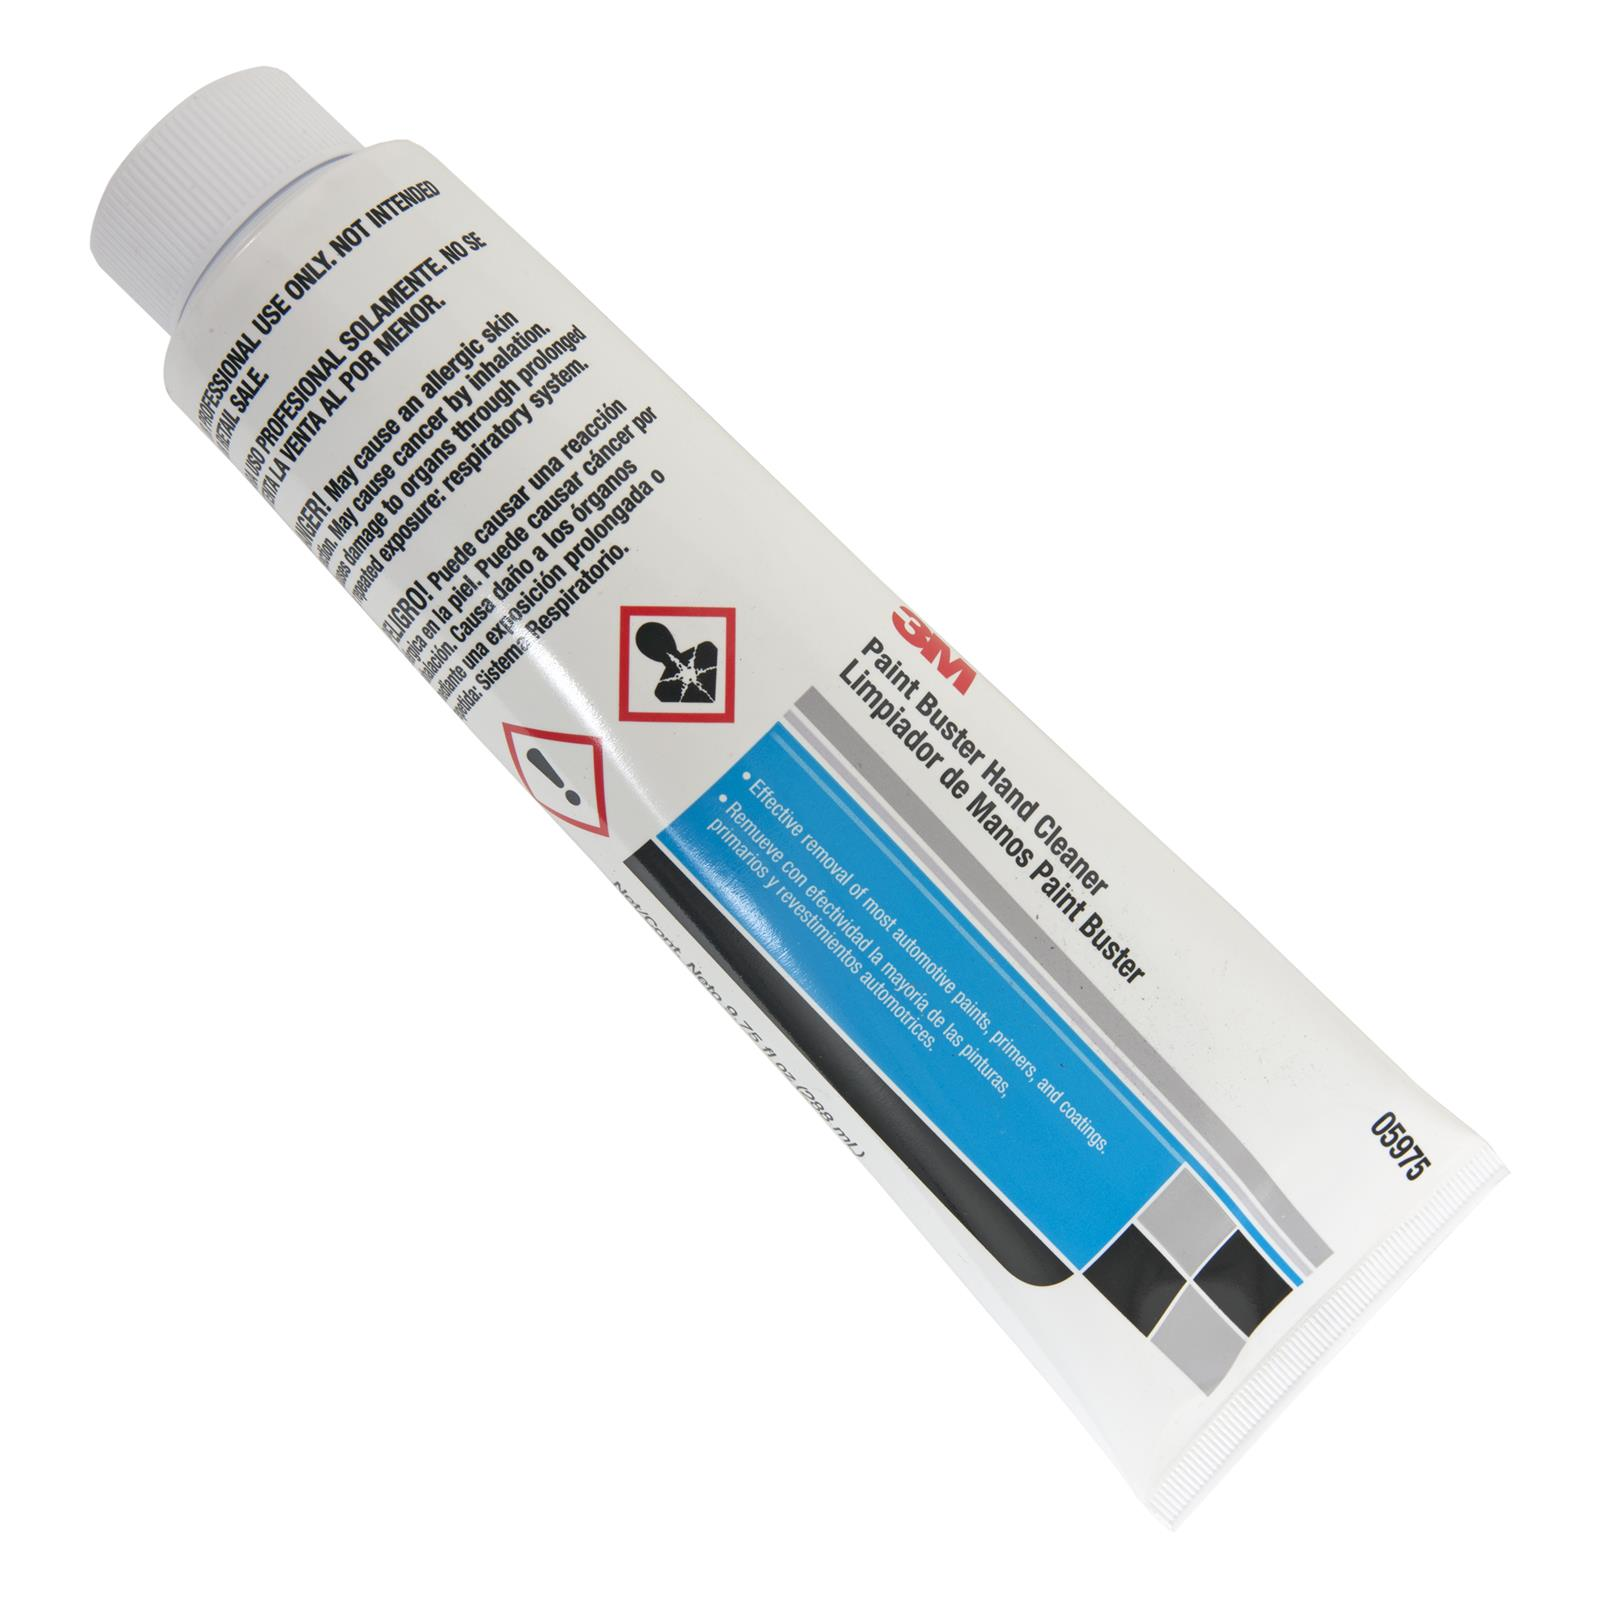 3M Products Paint Buster Hand Cleaner 05975